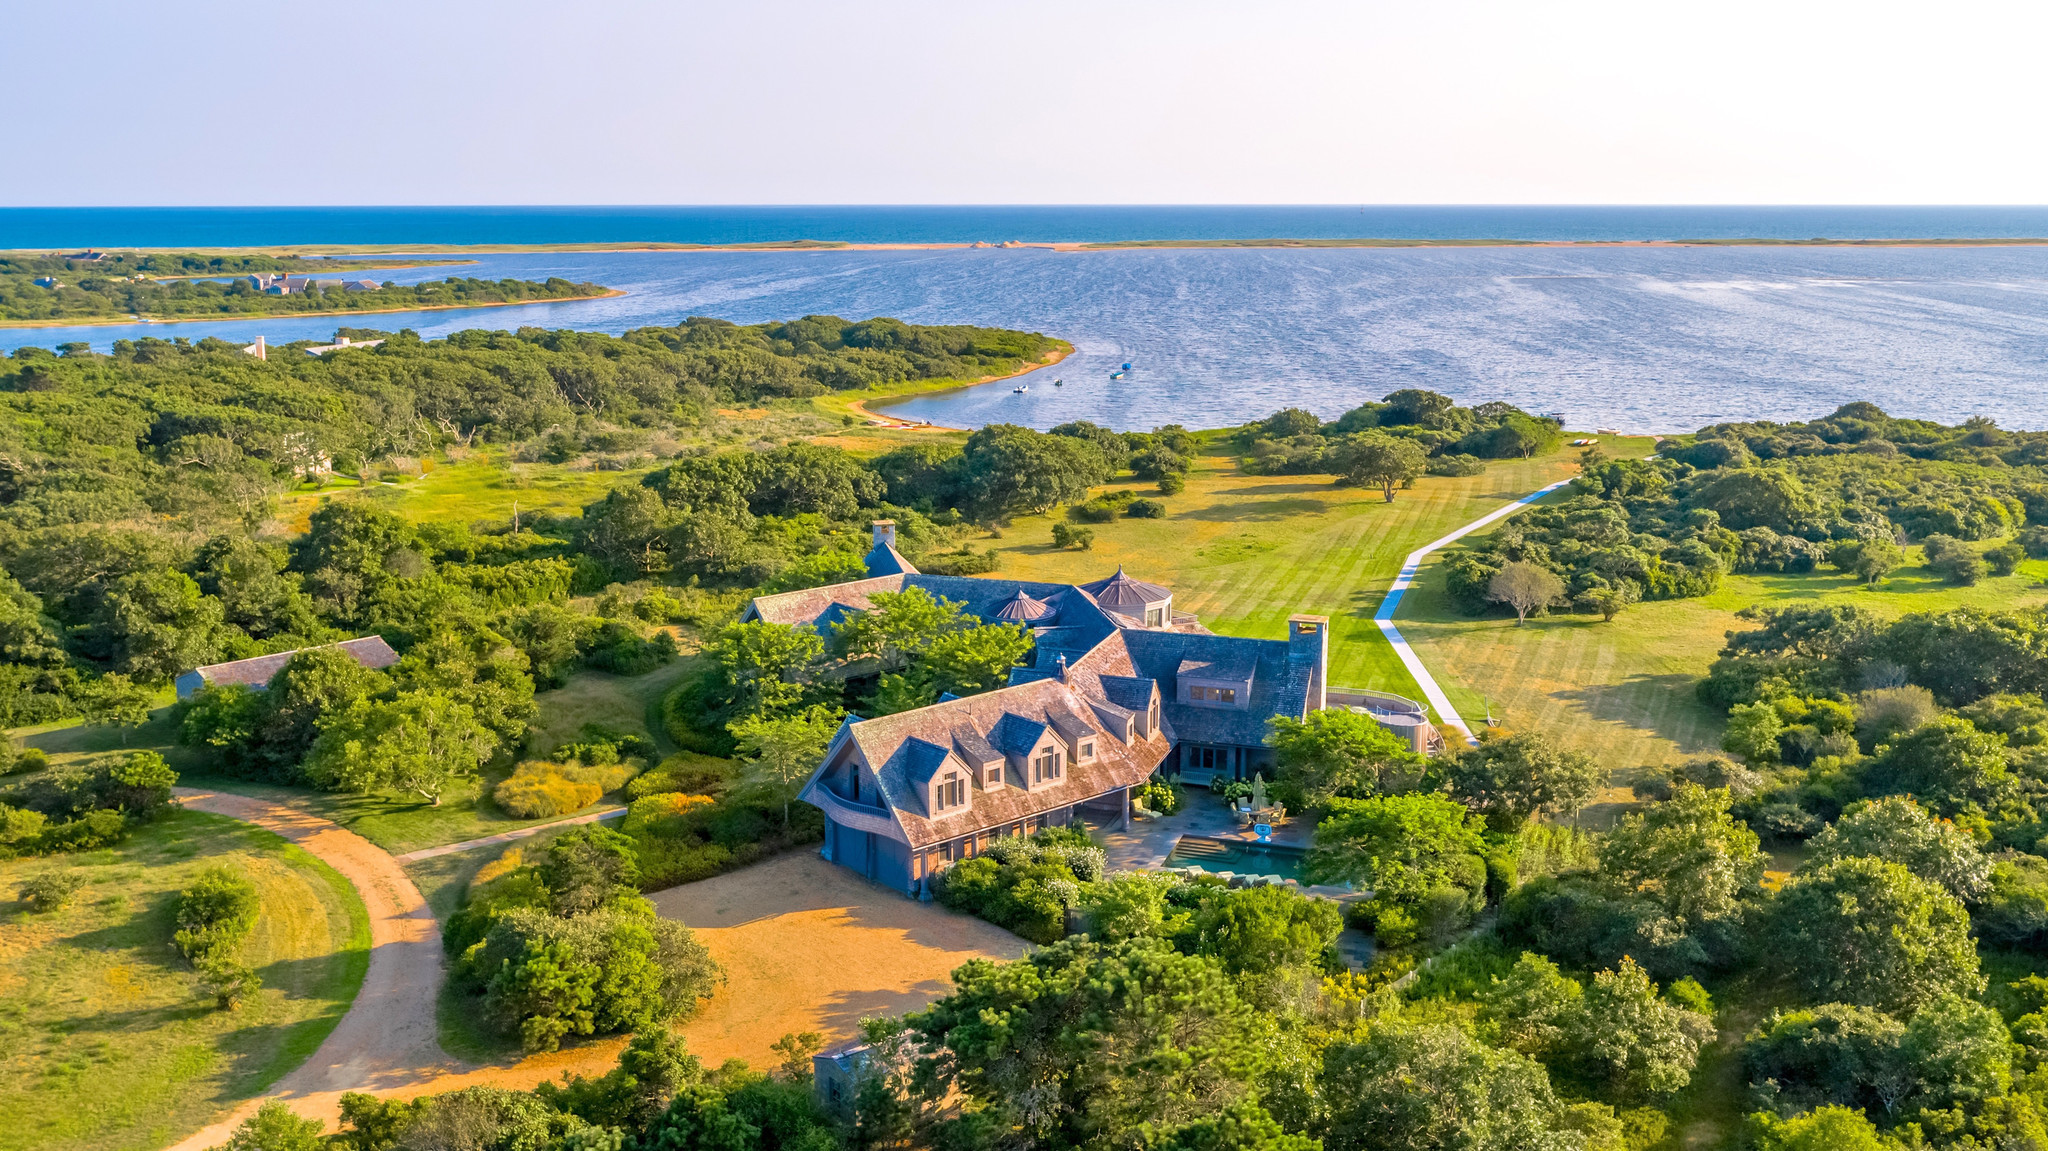 Barack and Michelle Obama drop almost $12 million on Martha's Vineyard beach estate: report - New York Daily News